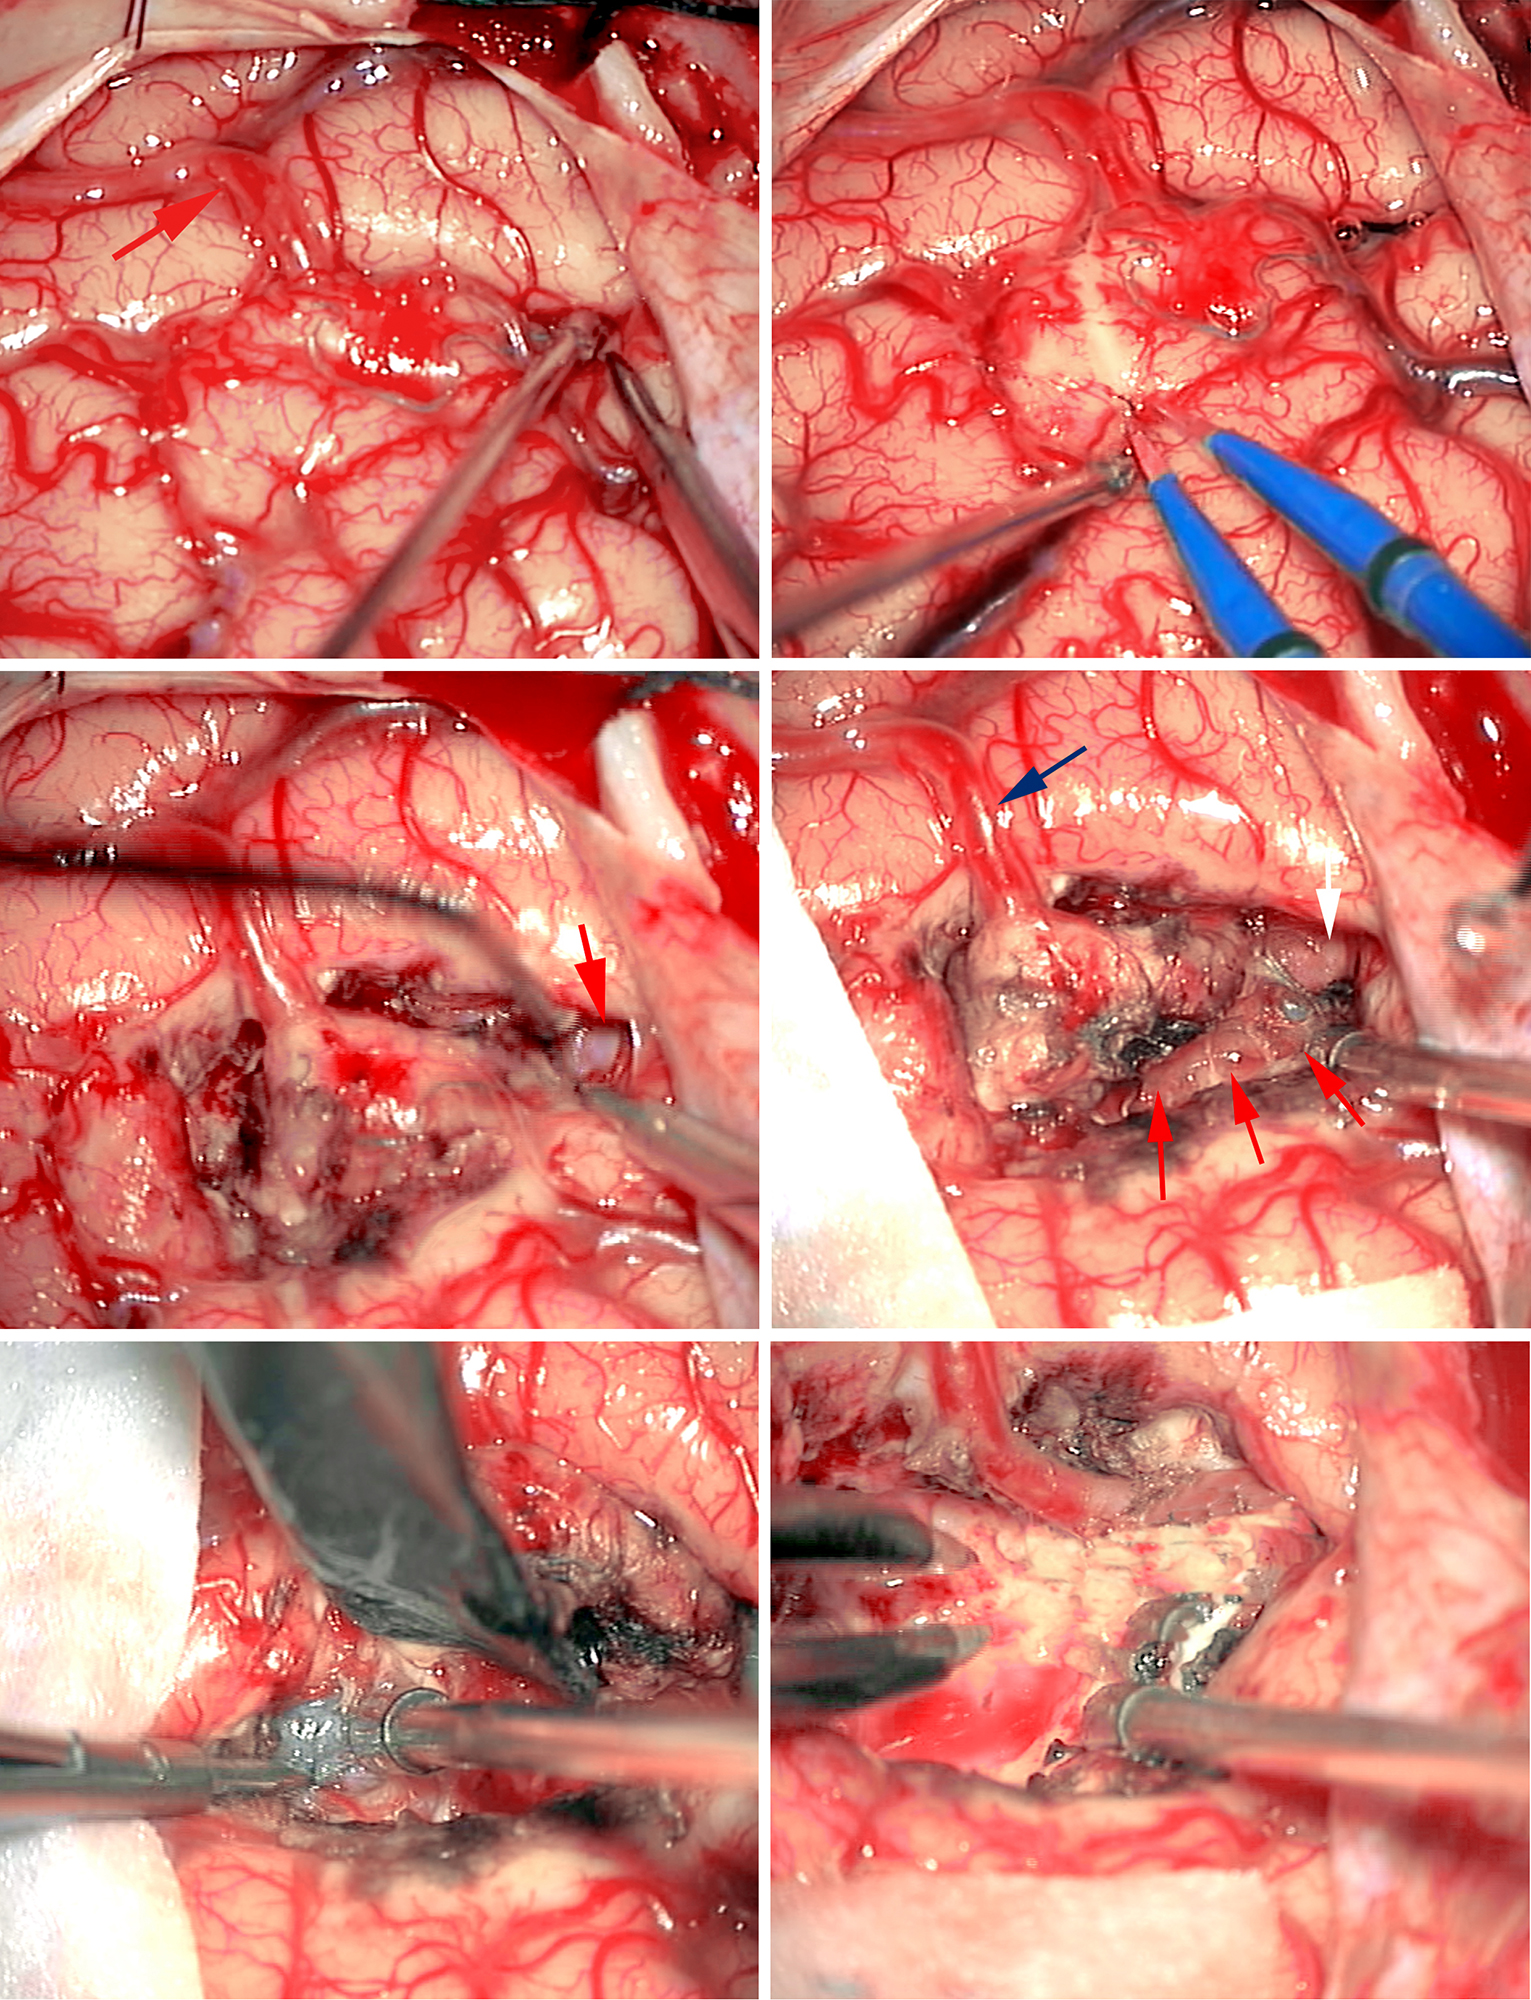 Figure 12: The basic steps in AVM resection are demonstrated. The AVM was only apparent on the surface based on a questionable feeding artery versus draining vein leading to the subcortical AVM (upper left image-arrow). Pial dissection was performed (upper right photo). Subarachnoid dissection revealed an  en passage  artery (middle left image-arrow). Parenchymal disconnection exposed the borders of the nidus (middle right photo-arrows); the identity of the cortical vessel (blue arrow) is still unknown, however, it is carefully preserved. Embolized vessels were found and assisted with white matter dissection (lower left photo). The small draining veins were sacrificed after complete AVM disconnection. The initial cortical vessel (upper left image-red arrow) was finally identified as an  en passage  artery that was spared (lower right image).